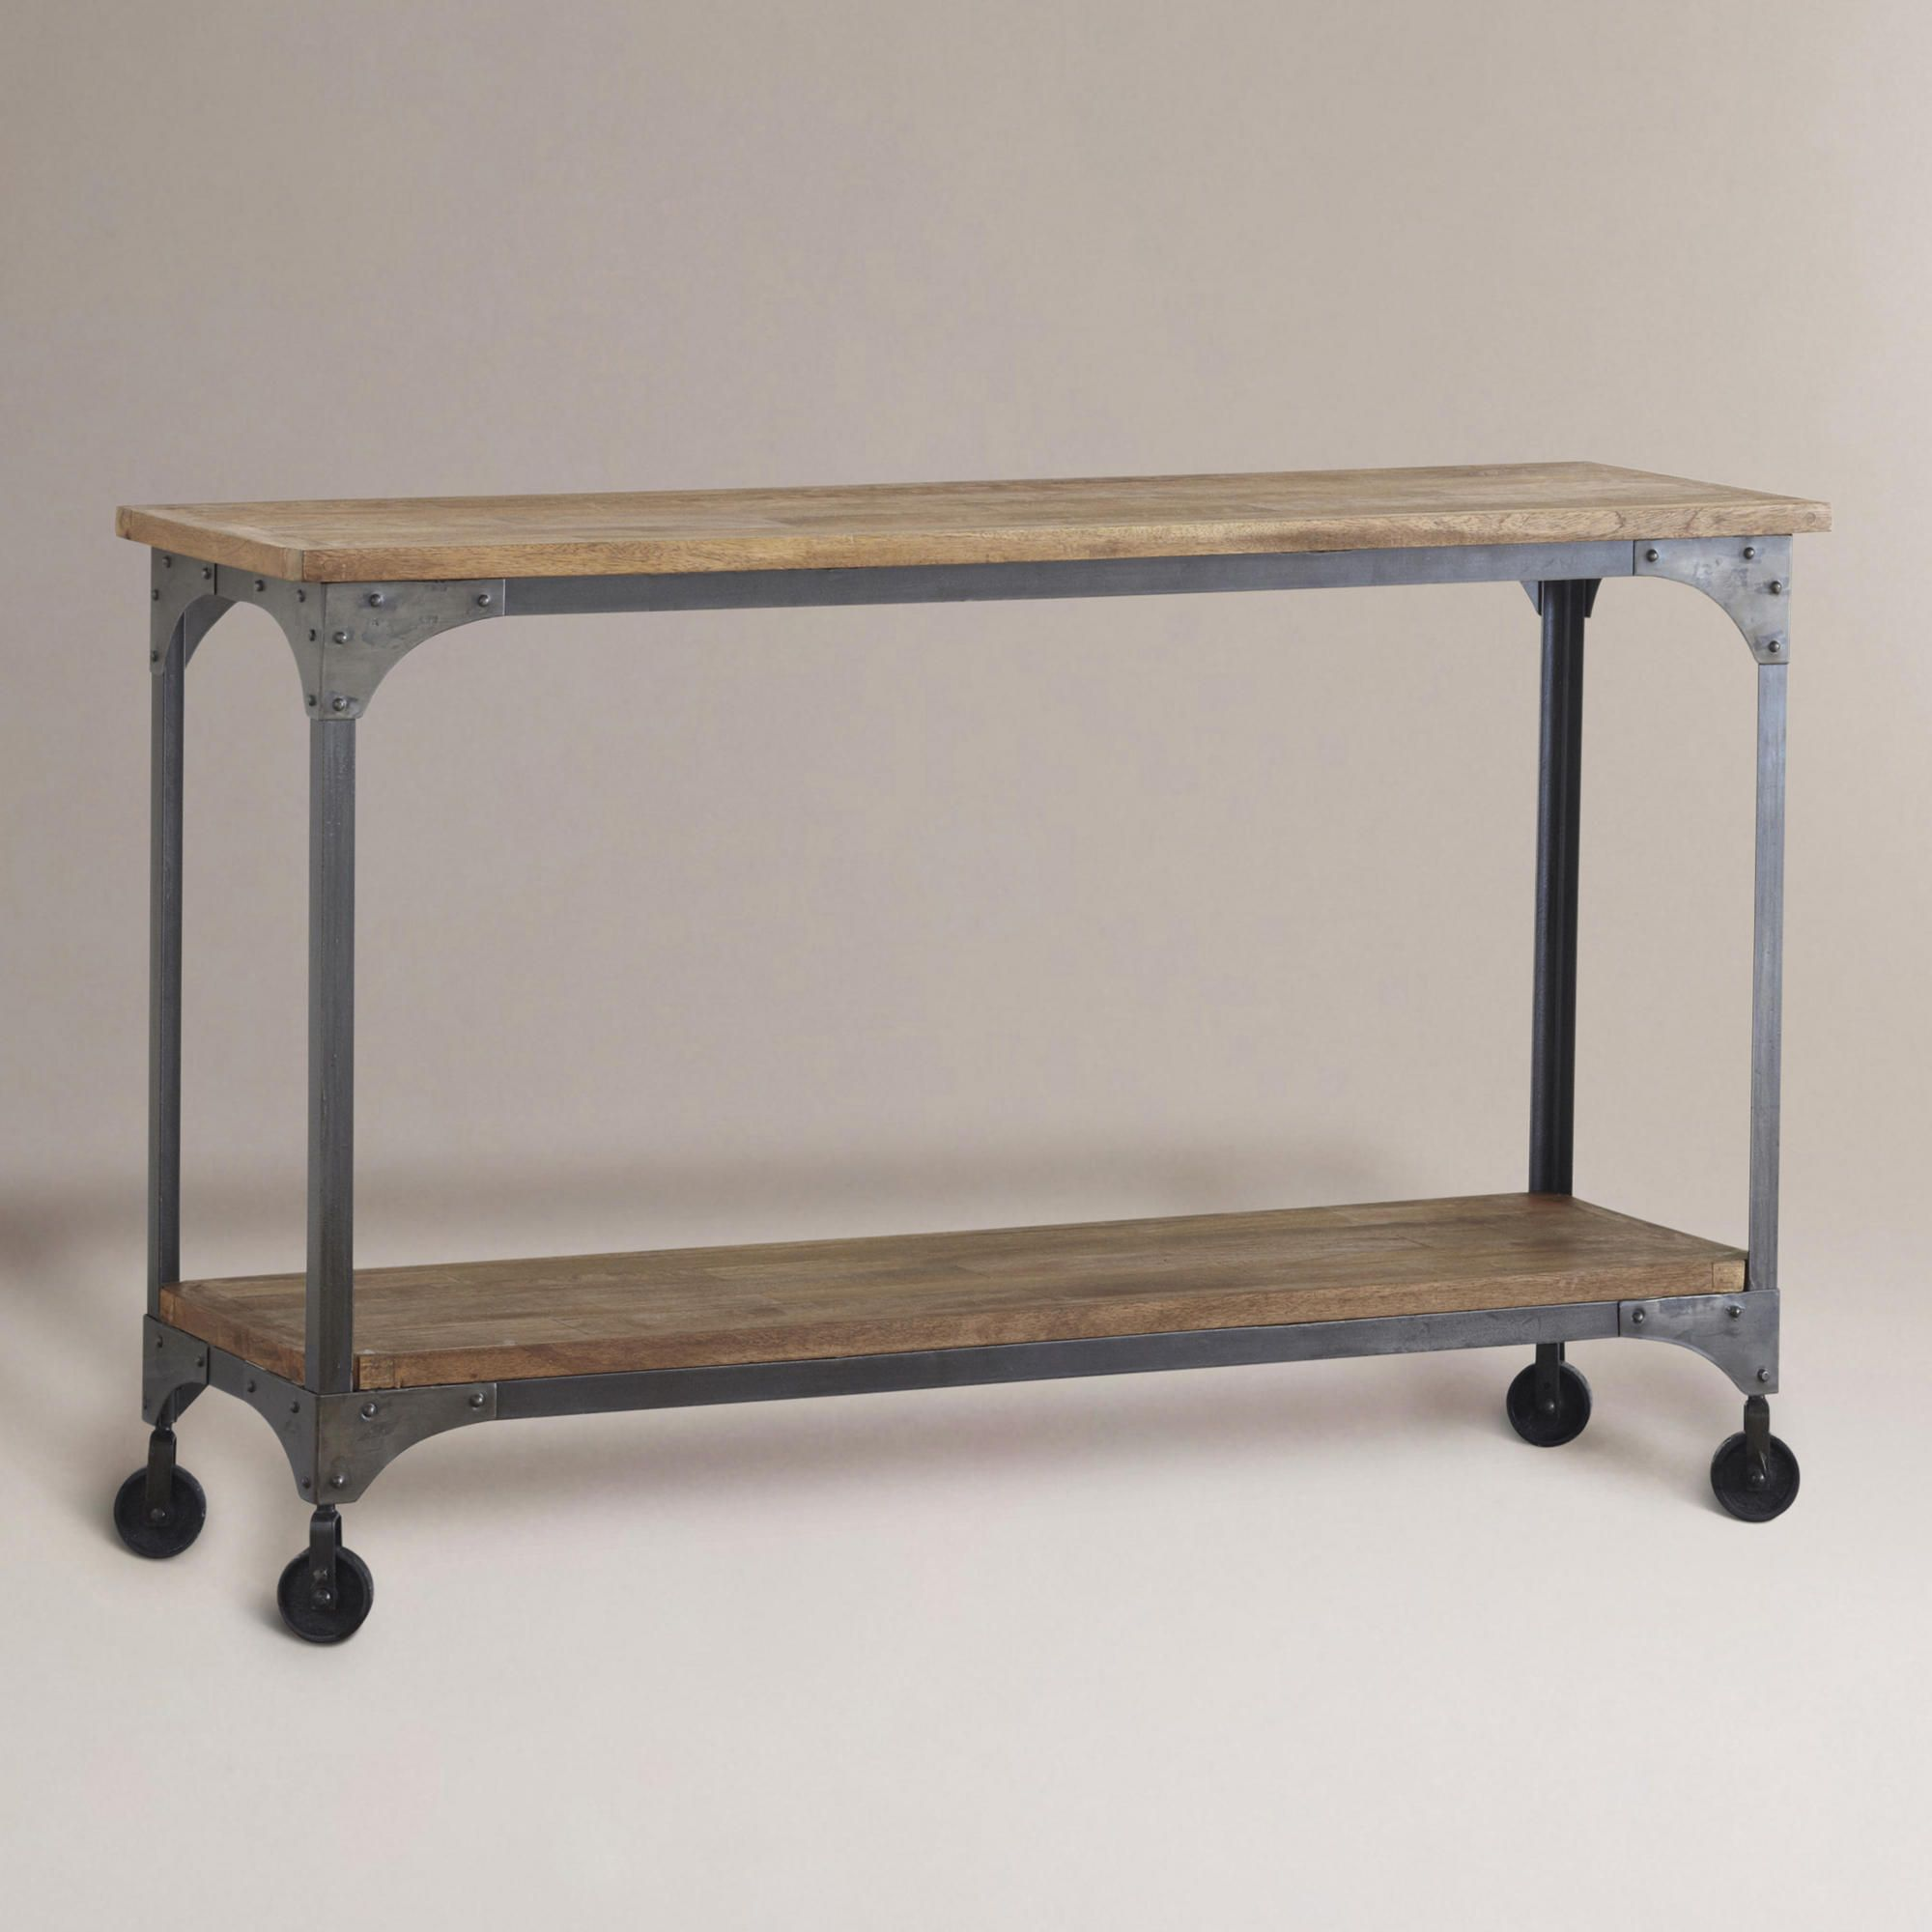 Jackson Rectangular Table With Metal Base: World Market - Entry...will Measure